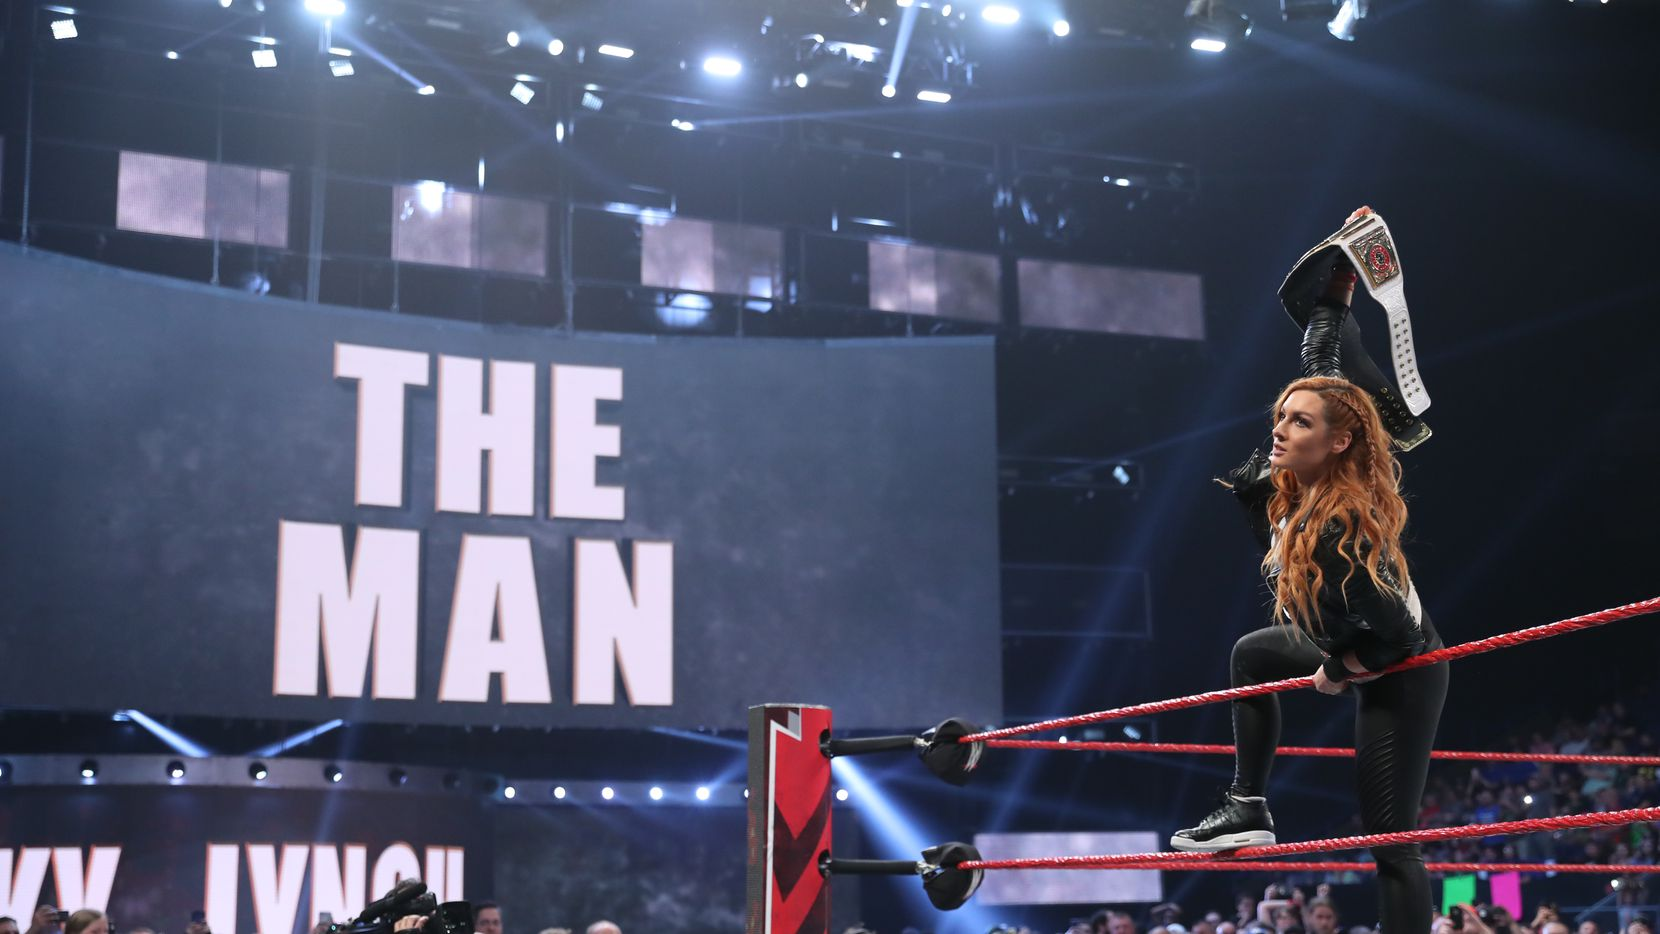 Raw women's champion Becky Lynch makes her entrance during an episode of WWE's Monday Night Raw.